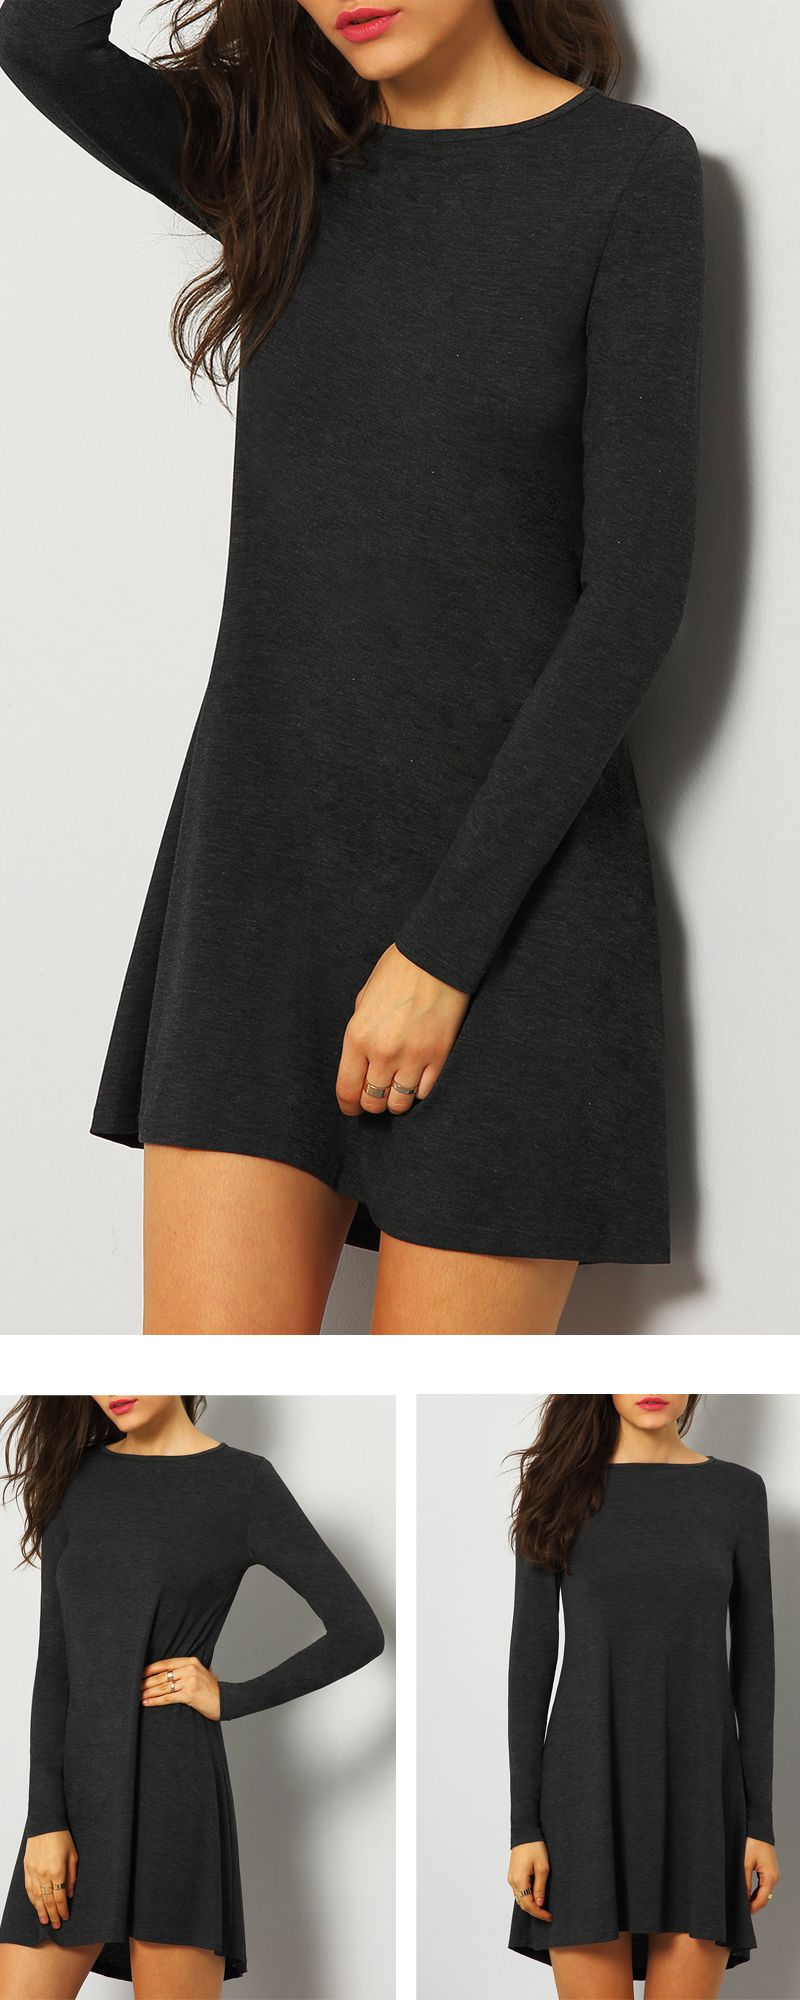 396c04014236 Minimalist and classic : Grey Long Sleeve Simple Casual Dress. Basic loose  shift plain fall jersey Tshirt dress from shein .